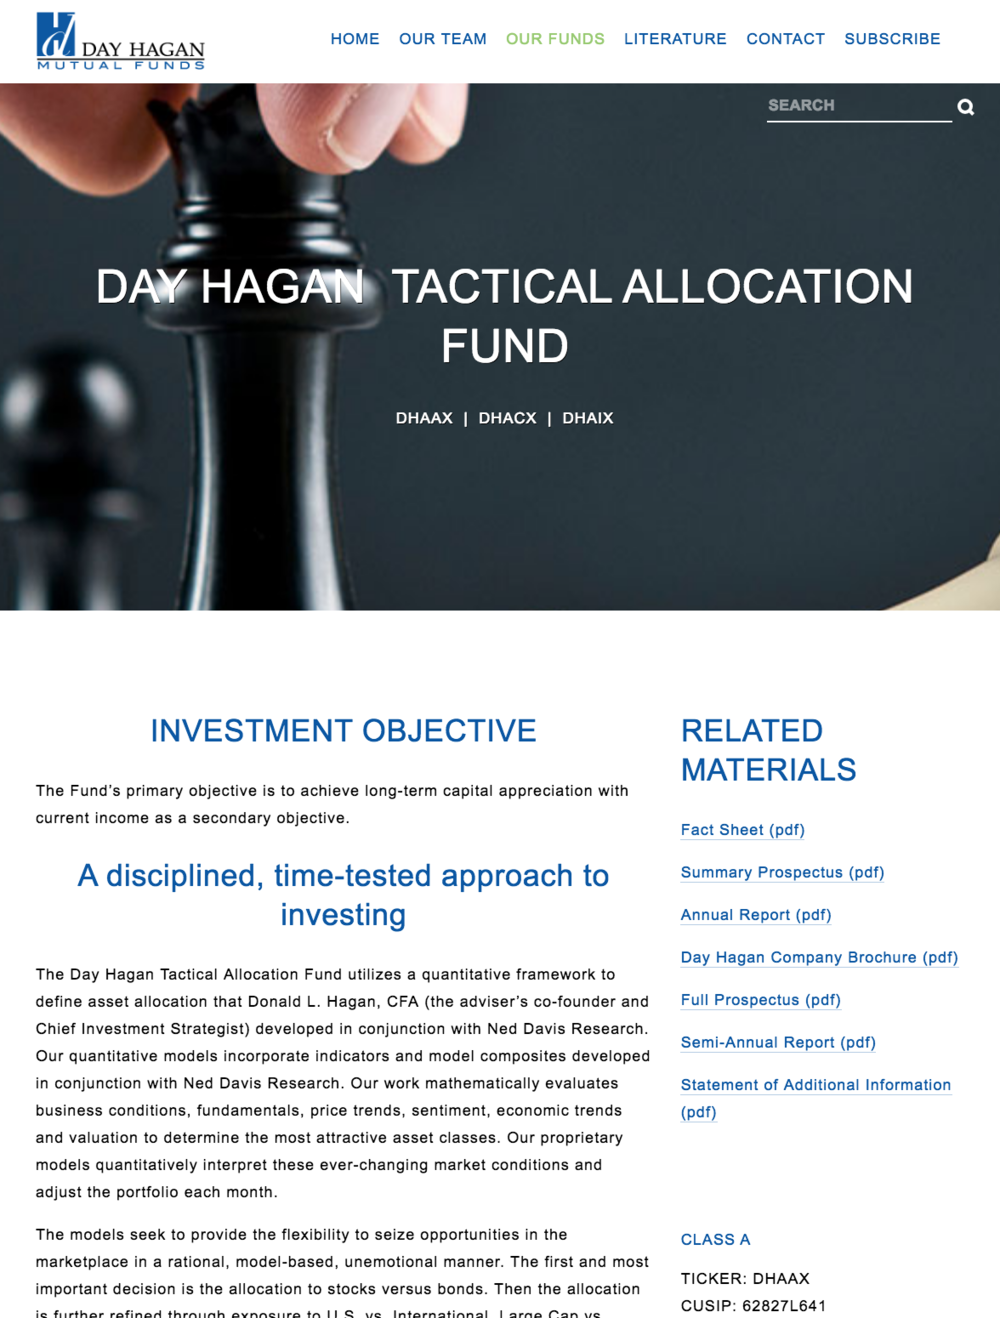 dhfunds-tactical-allocation-fund-page.png